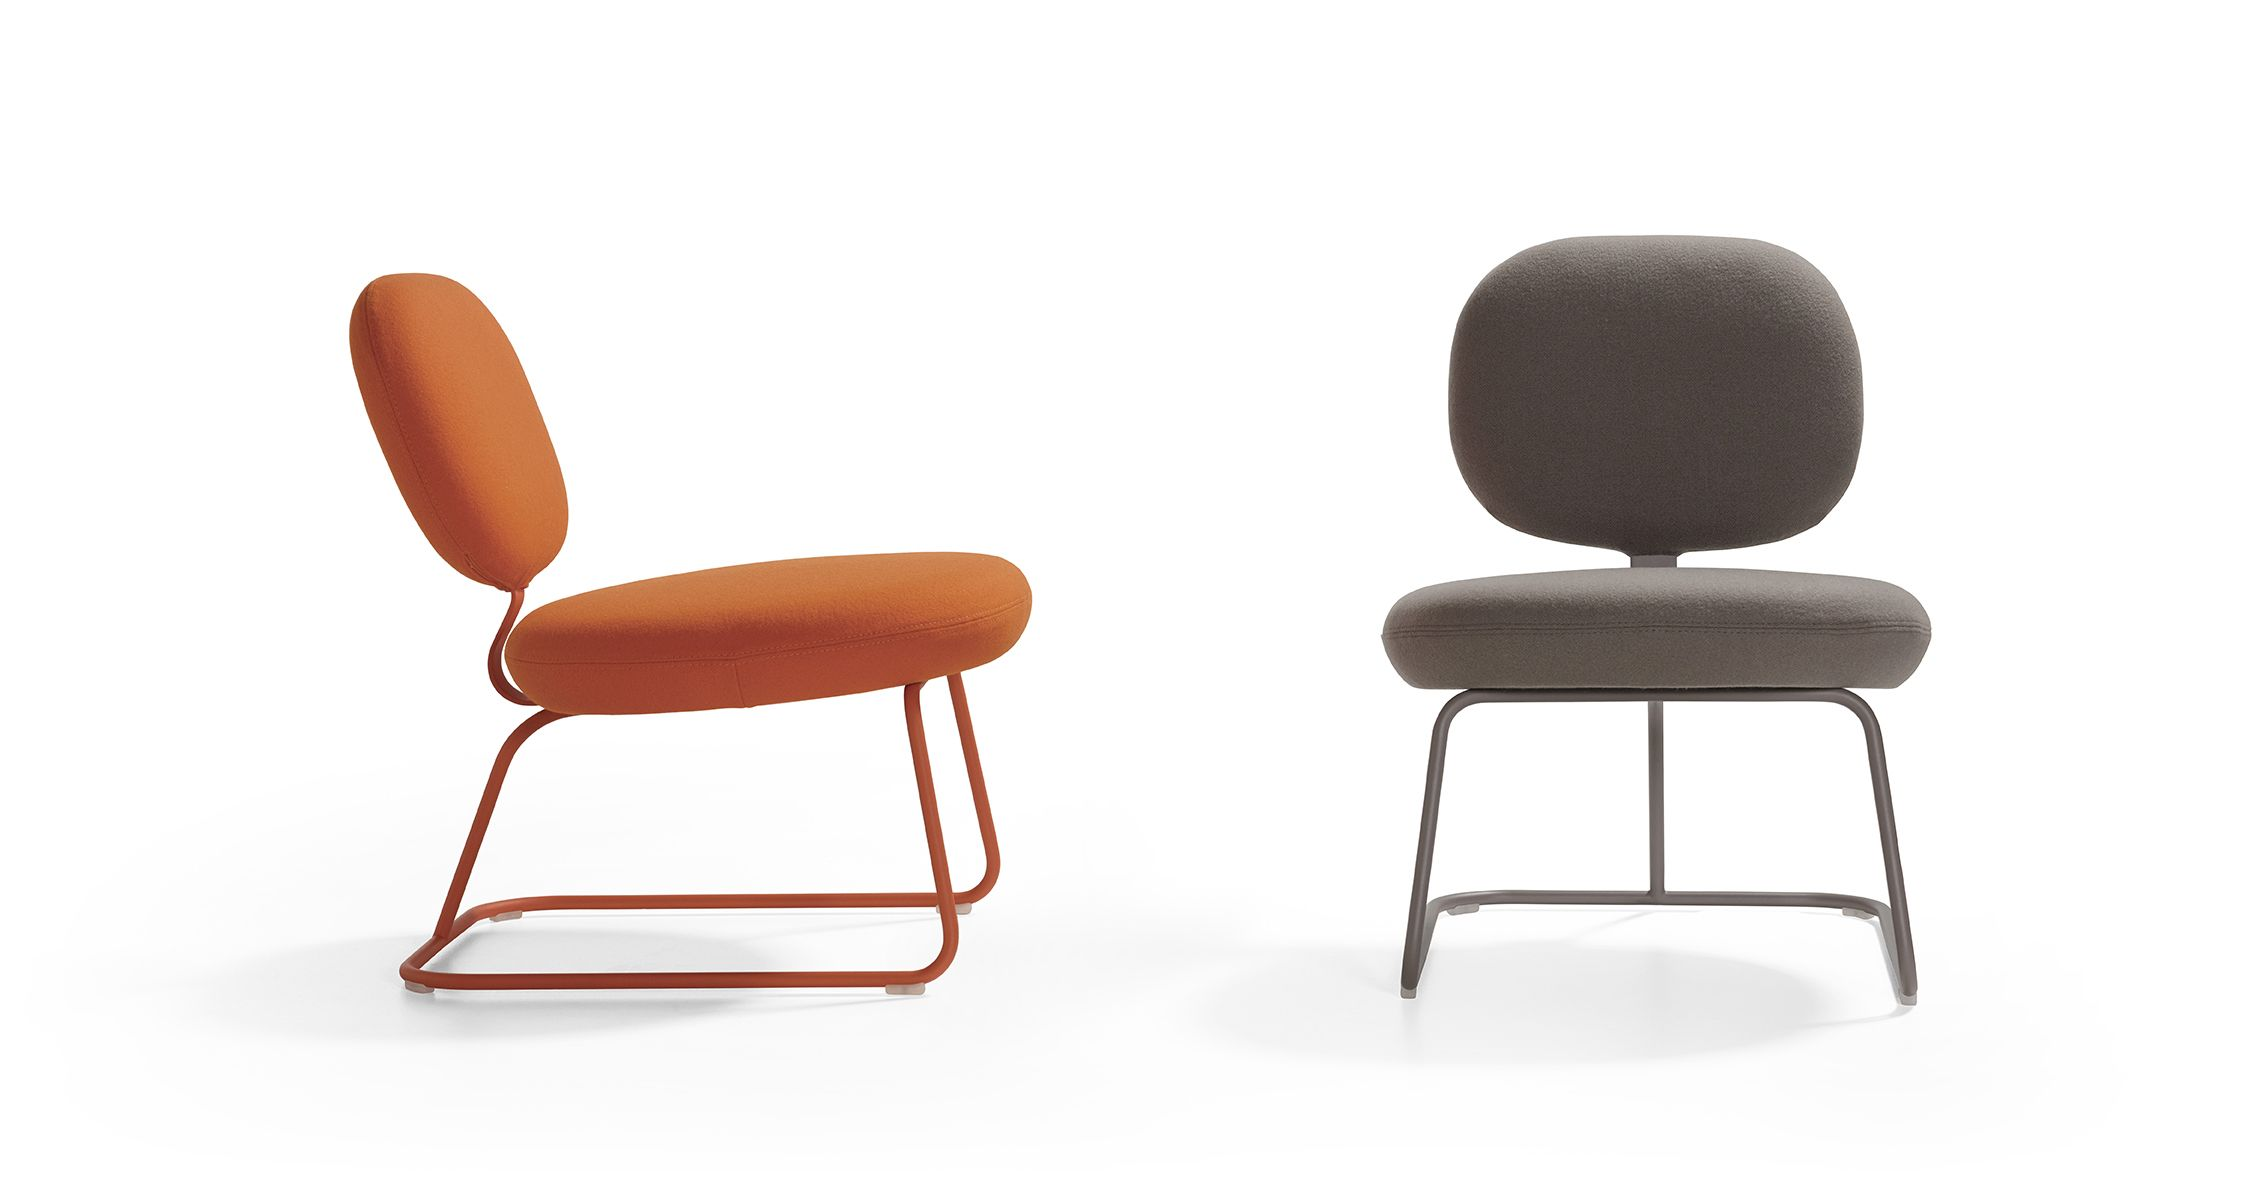 Jasper Morrison's Vega chair from 1977, reintroduced by Artifort in time to catch the retro wave. Now touting being green by swapping out chrome plating for powdercoat. #May2015